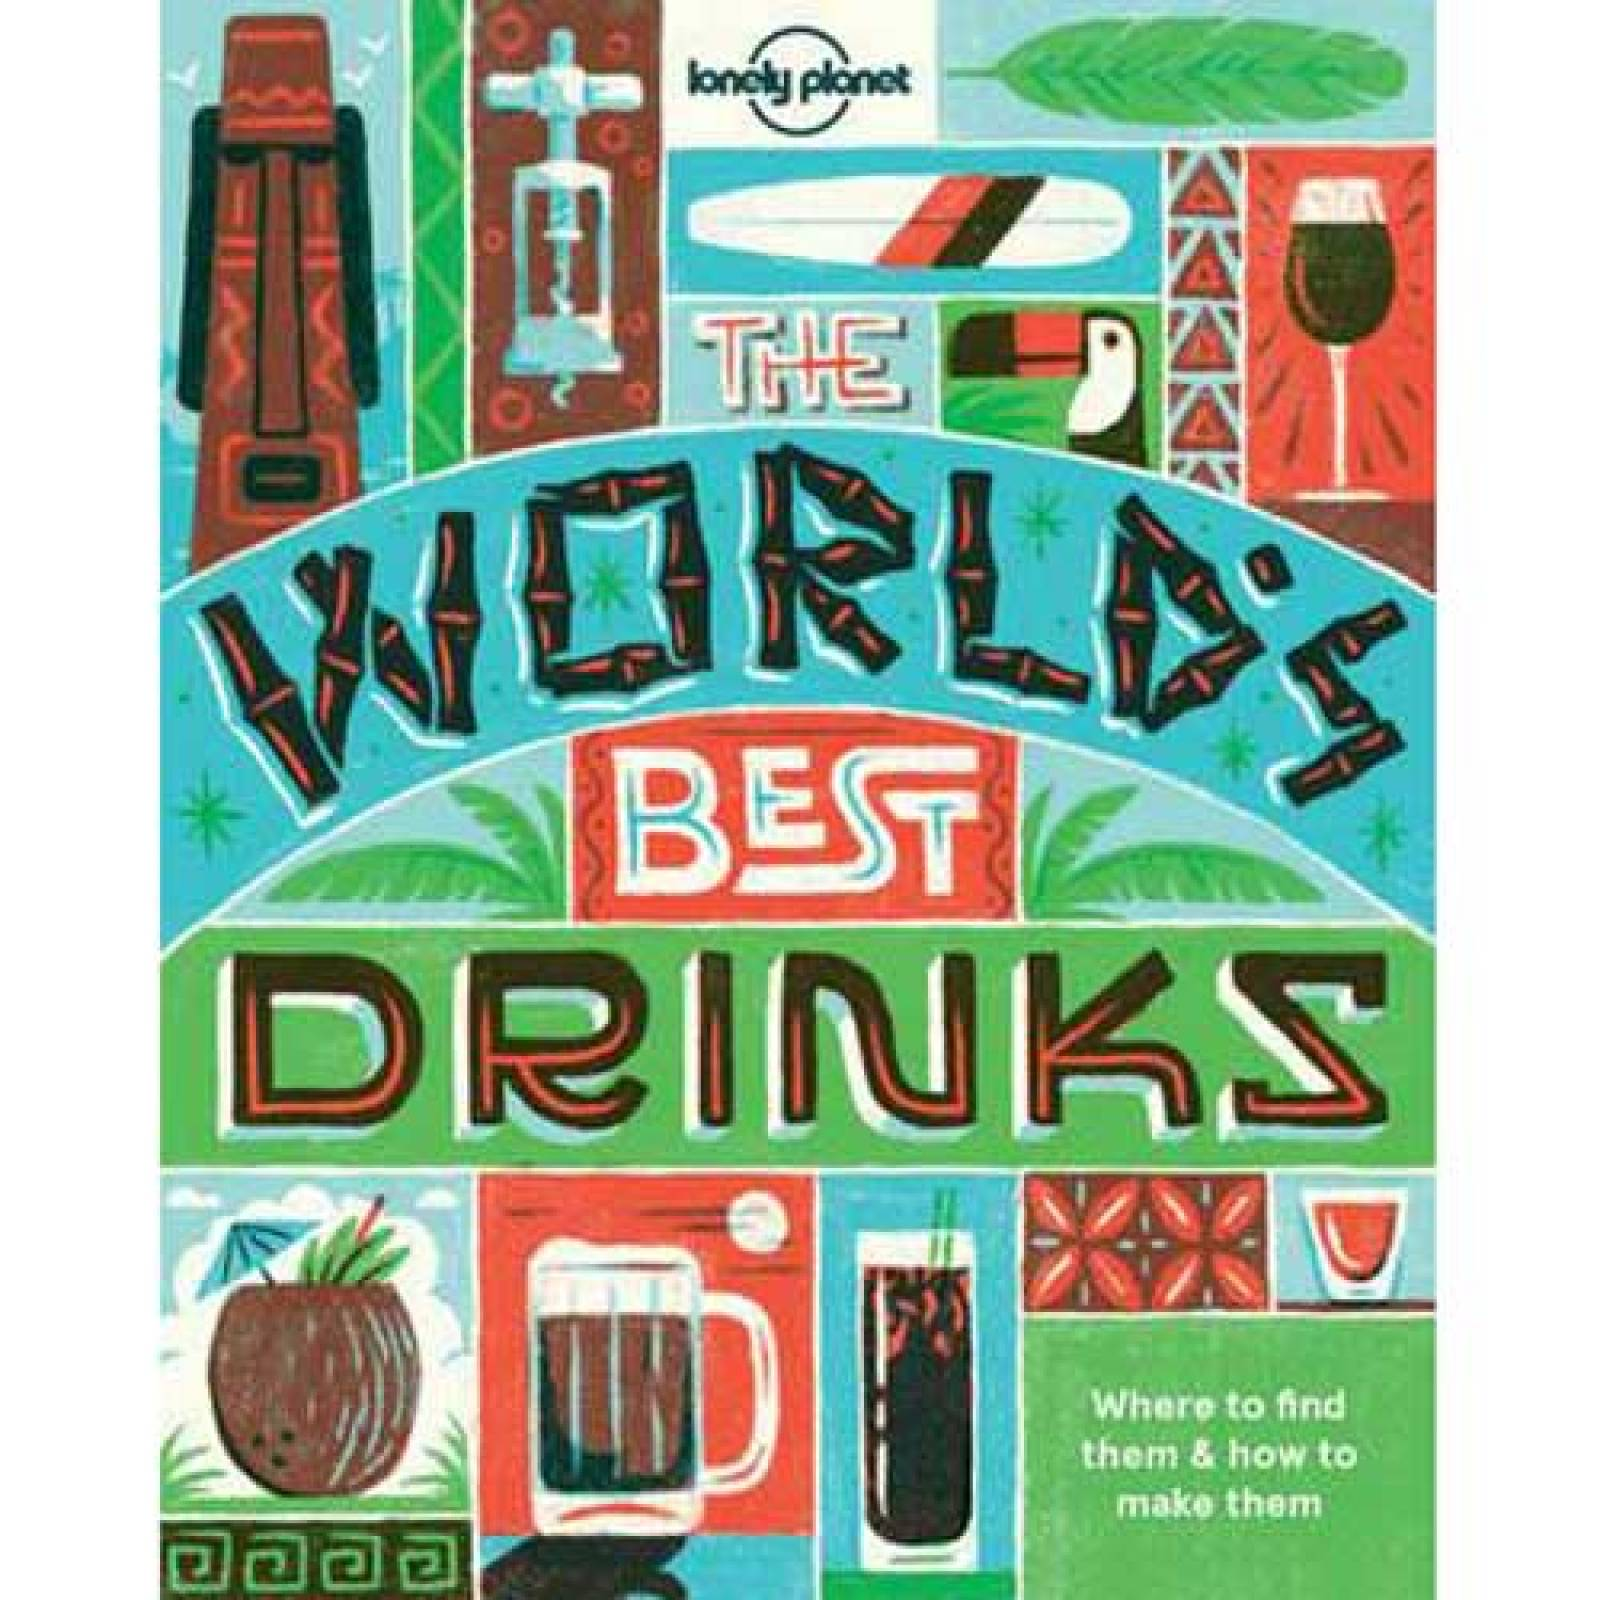 The World's Best Drinks By Lonely Planet